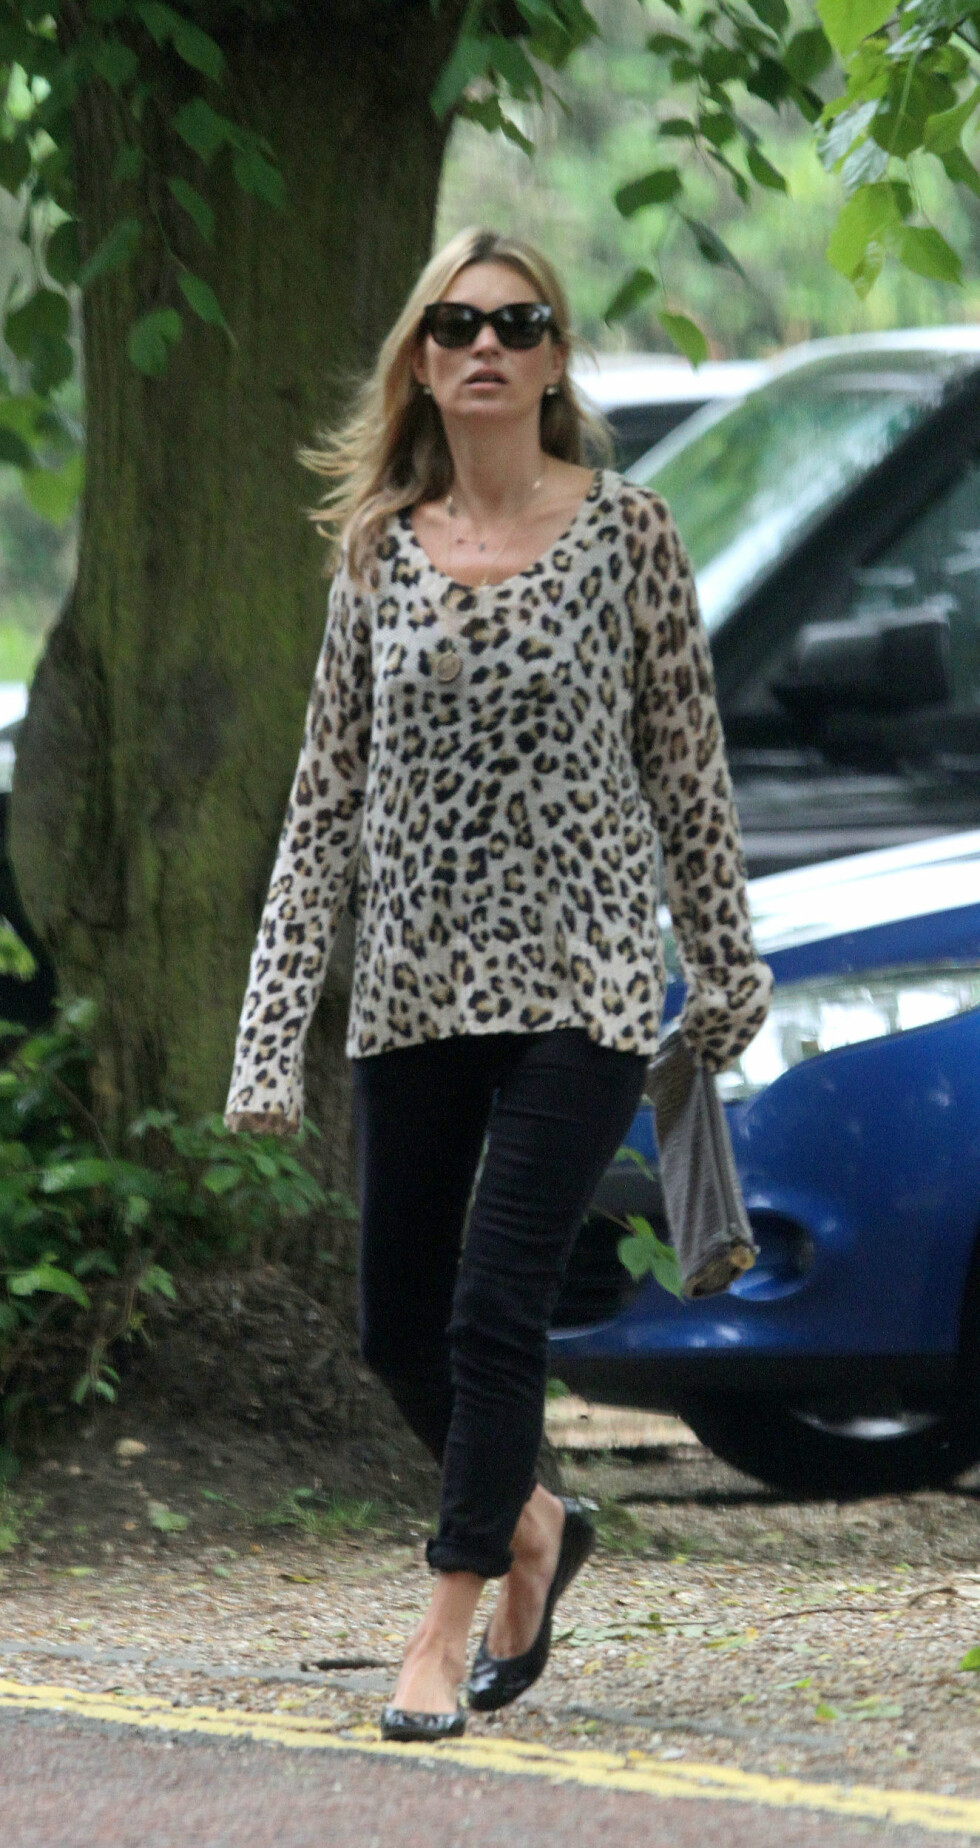 <strong>  Pictured:</strong> Kate Moss  Ref: SPL565534  200613   Picture by: W8 Media / Splash News  Splash News and Pictures Los Angeles:310-821-2666 New York:212-619-2666 London:870-934-2666 photodesk@splashnews.com  *** Local Caption *** 8.07472585 Foto: W8 Media / Splash News/ All Over